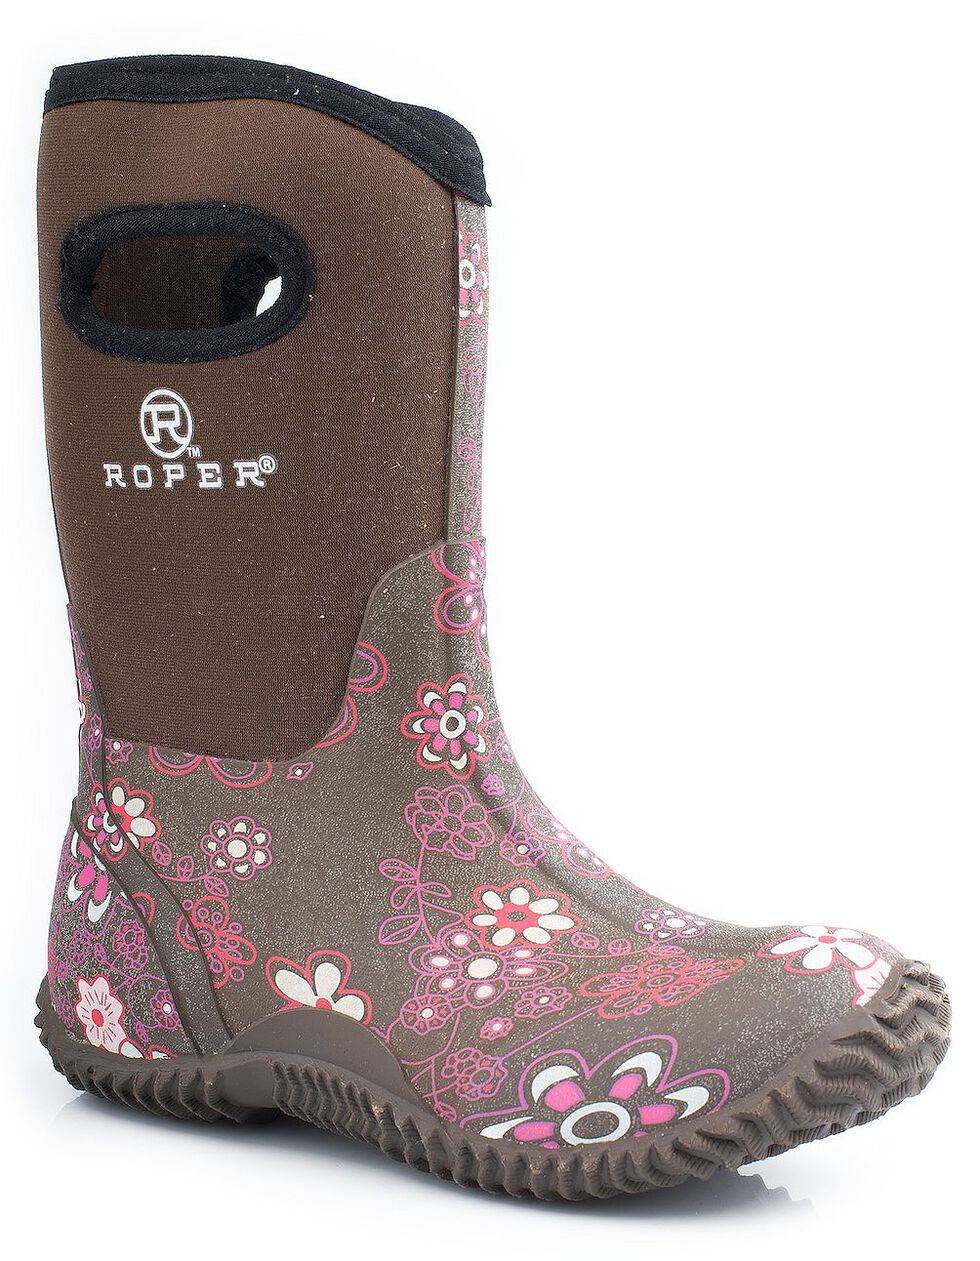 Roper Girls' Pink Floral Neoprene Boots, Brown, hi-res